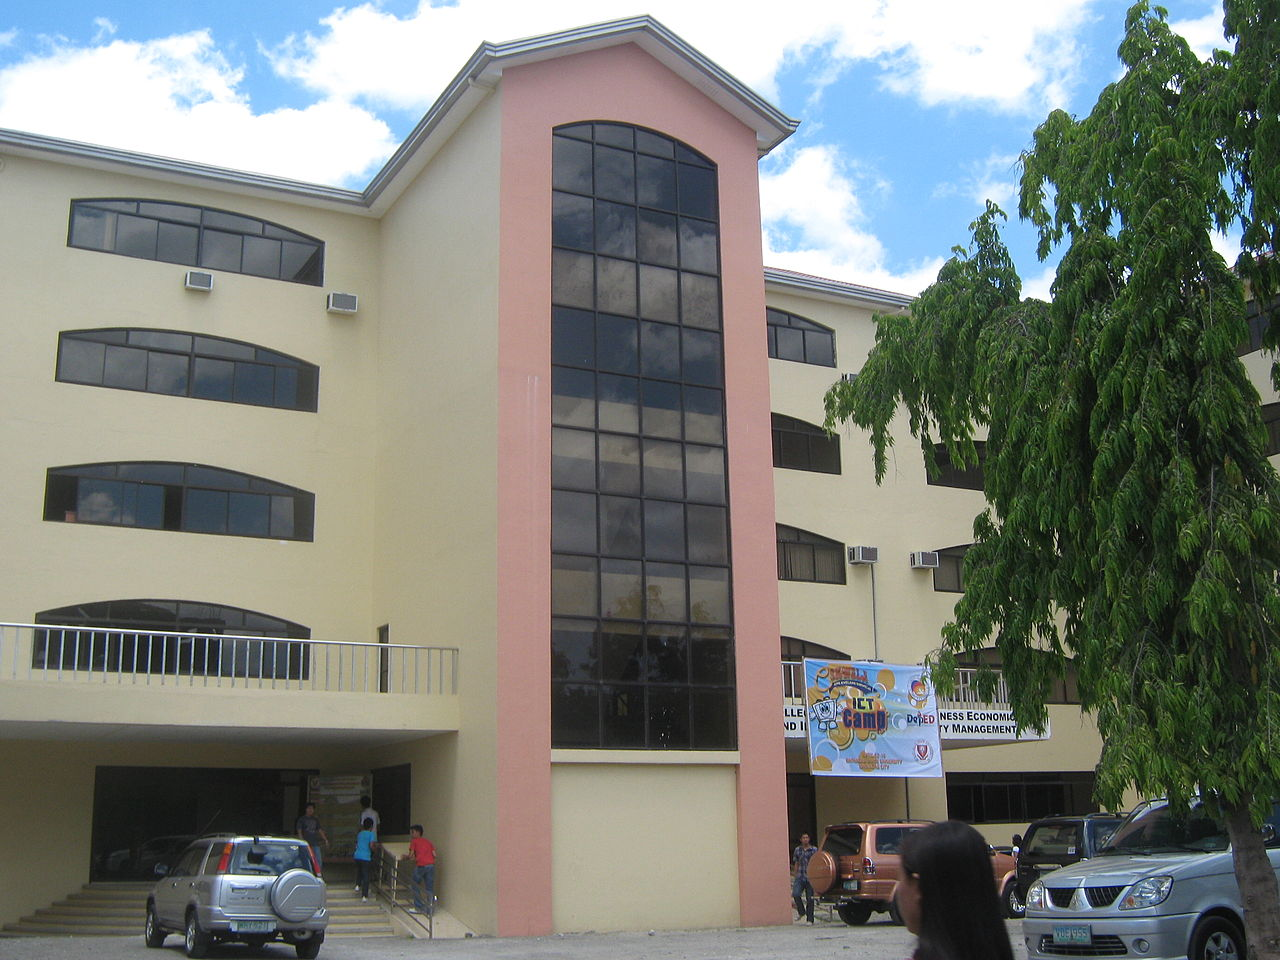 filecollege of accountancy business economics and